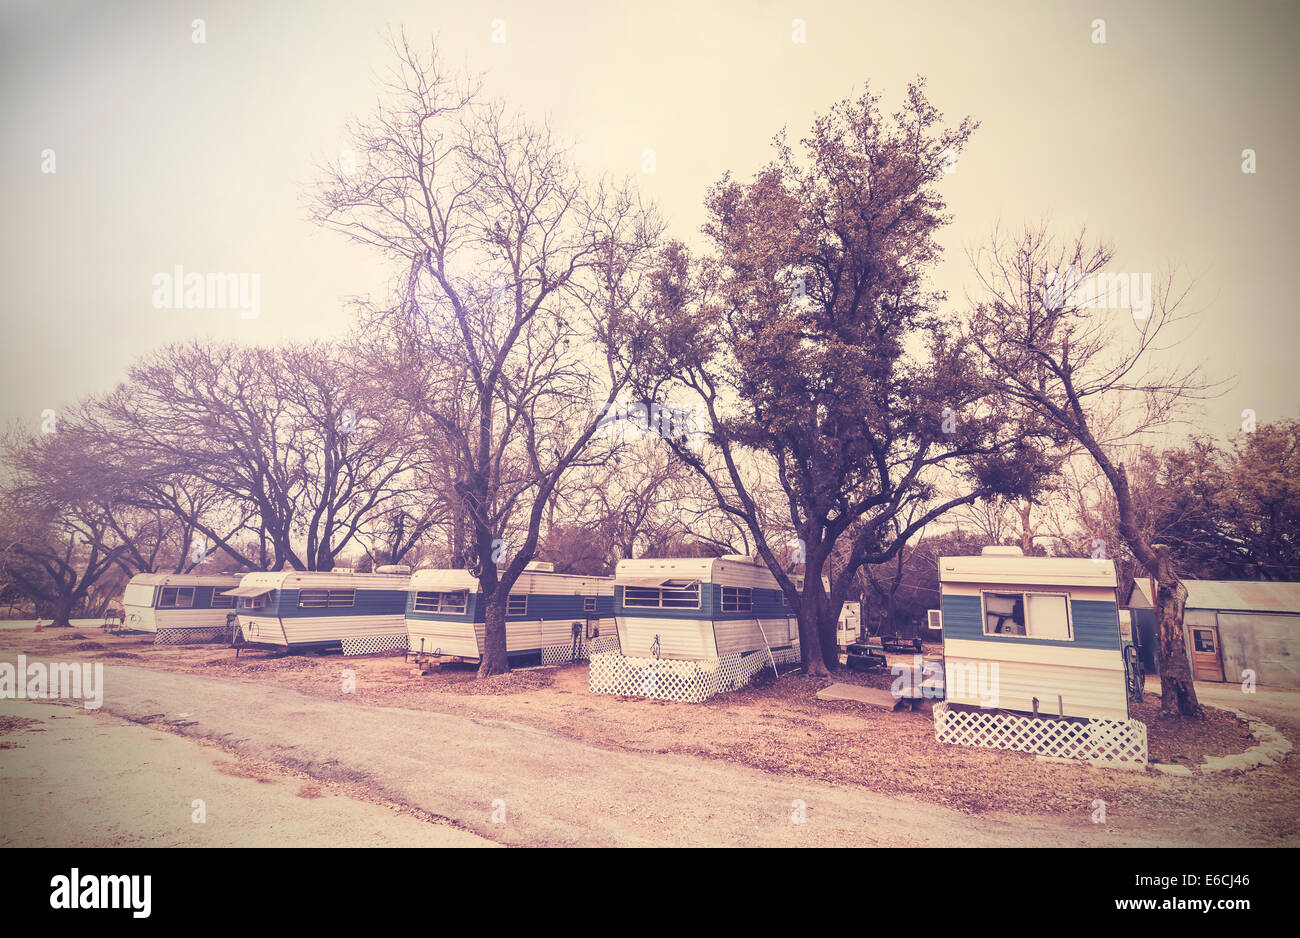 Vintage picture of american house trailers estate, USA countryside. - Stock Image